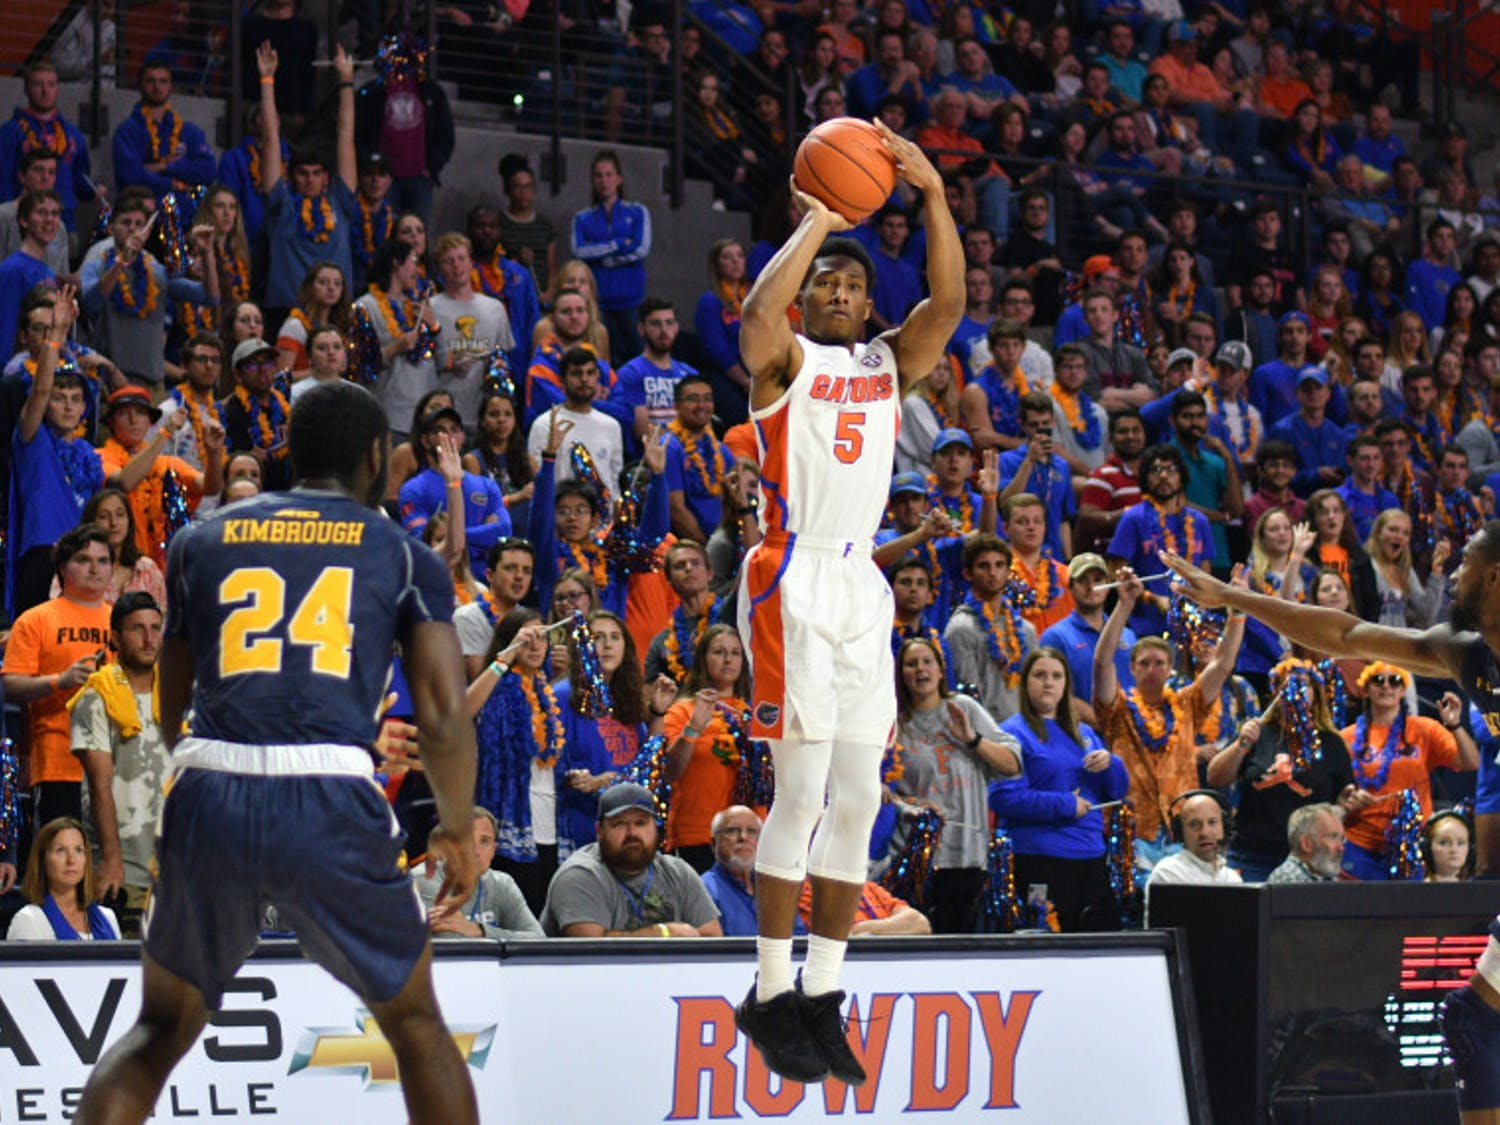 Florida guard KeVaughn Allen went 0-for-3 from the field in the Gators' 82-69 win against La Salle on Saturday in the O'Connell Center. He shot 6-for-11 in his previous game against Charleston Southern.